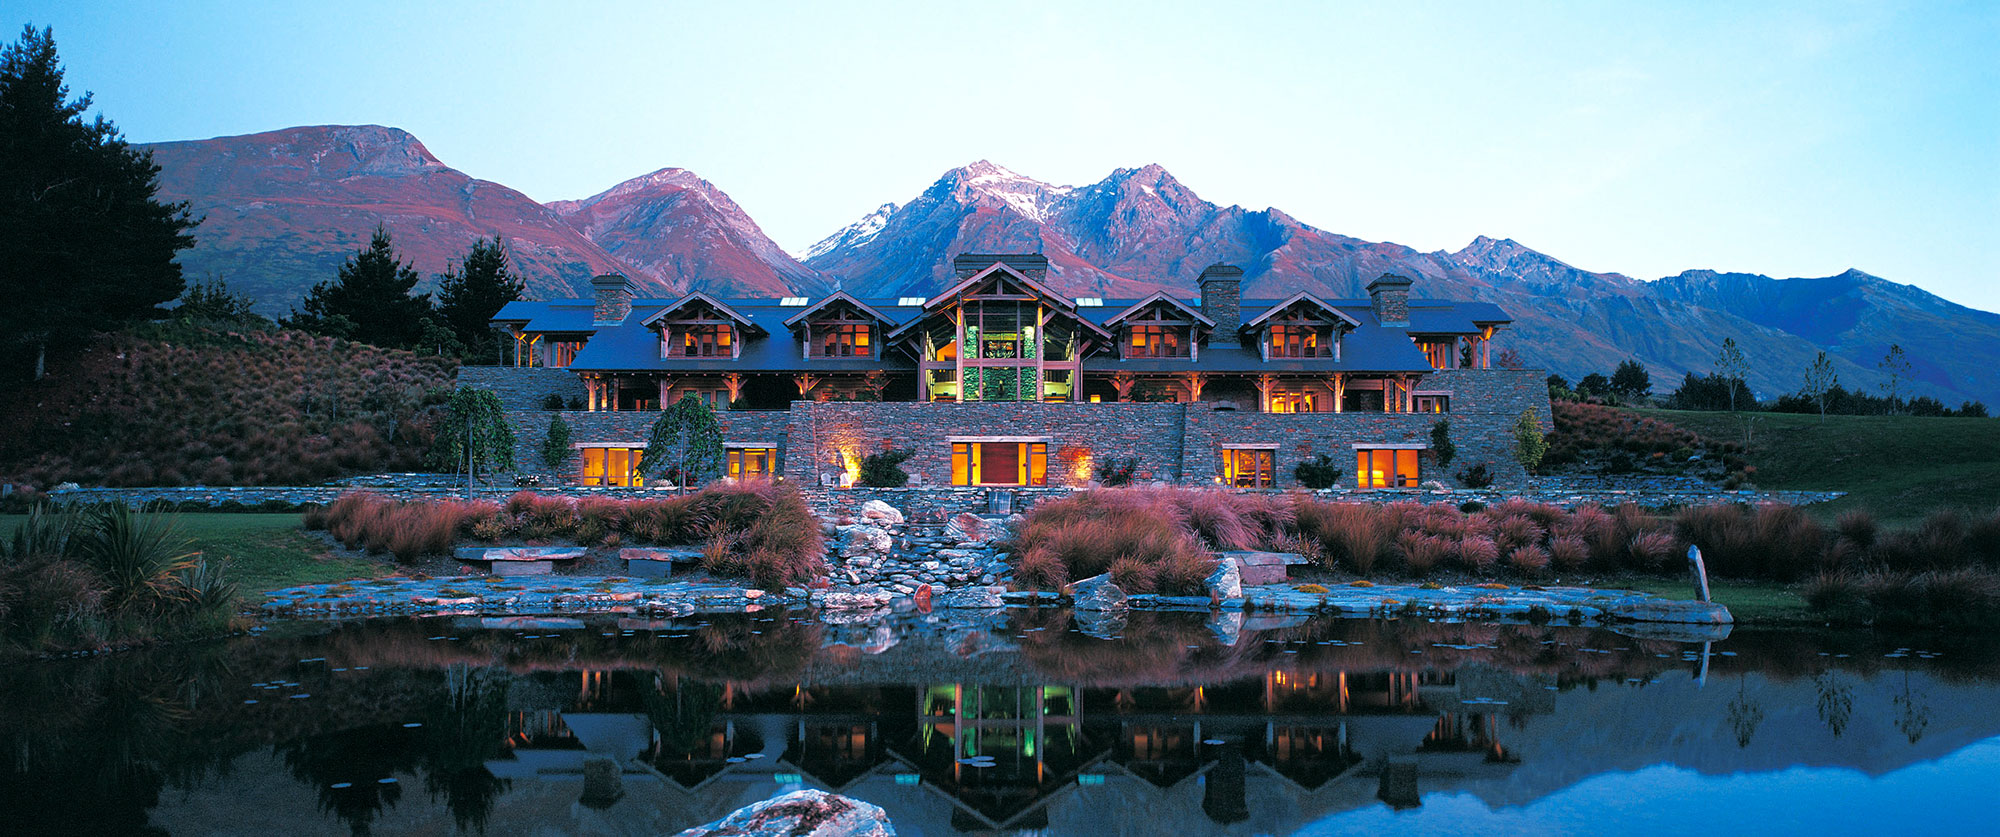 New Zealand Luxury Vacation - Blanket Bay Queenstown